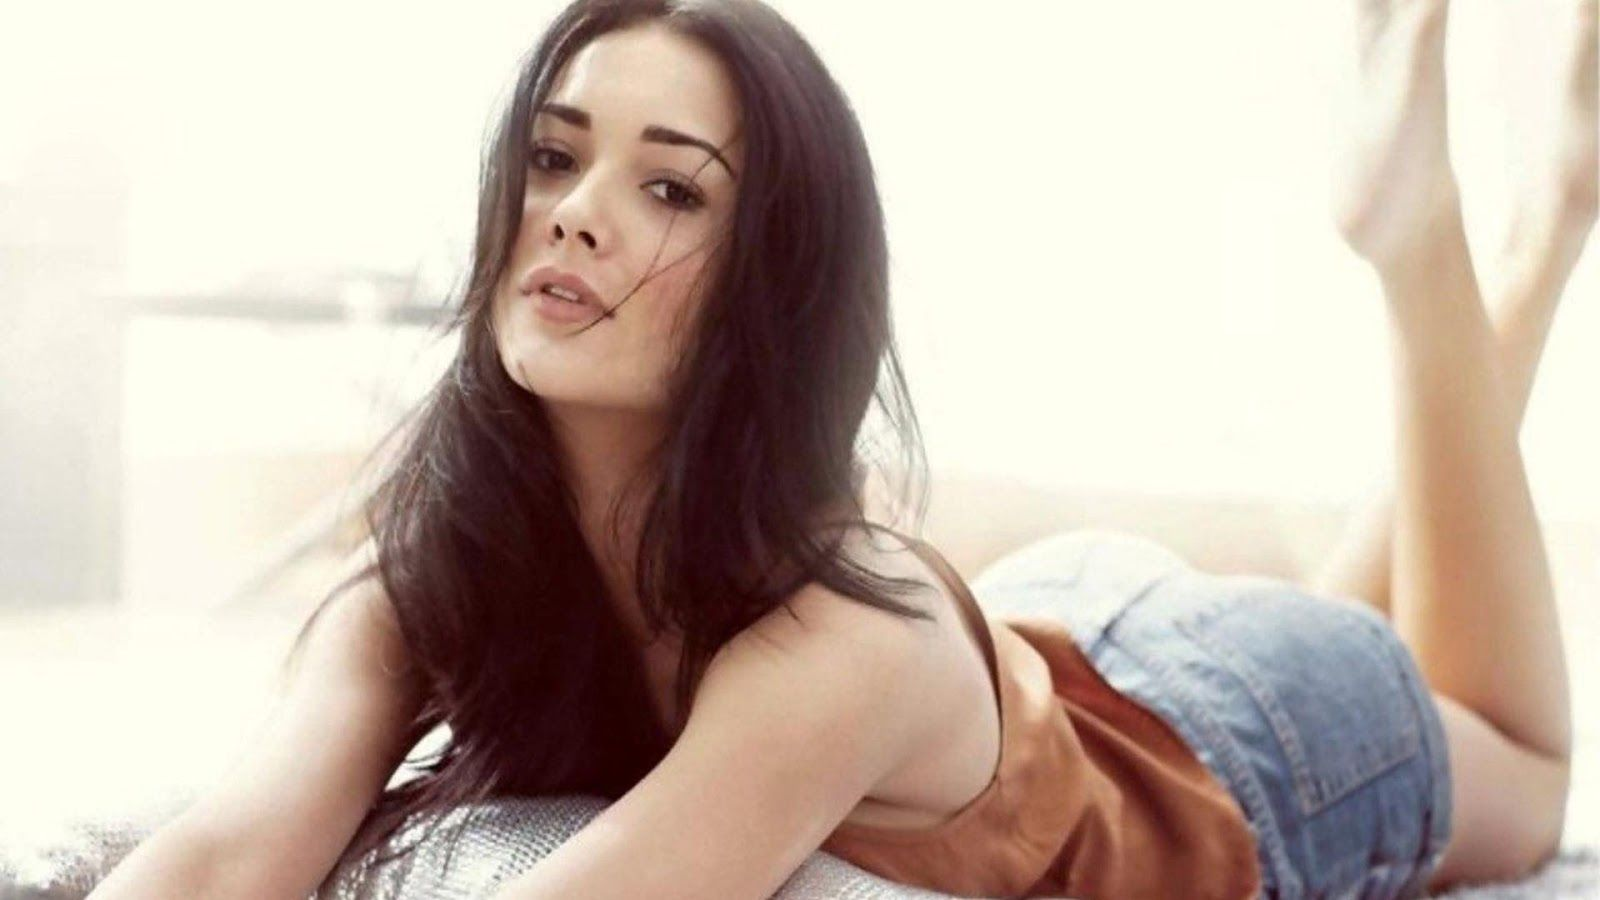 Amy Jackson Sex Com indian film bollywood actresses photos biography amy - amy